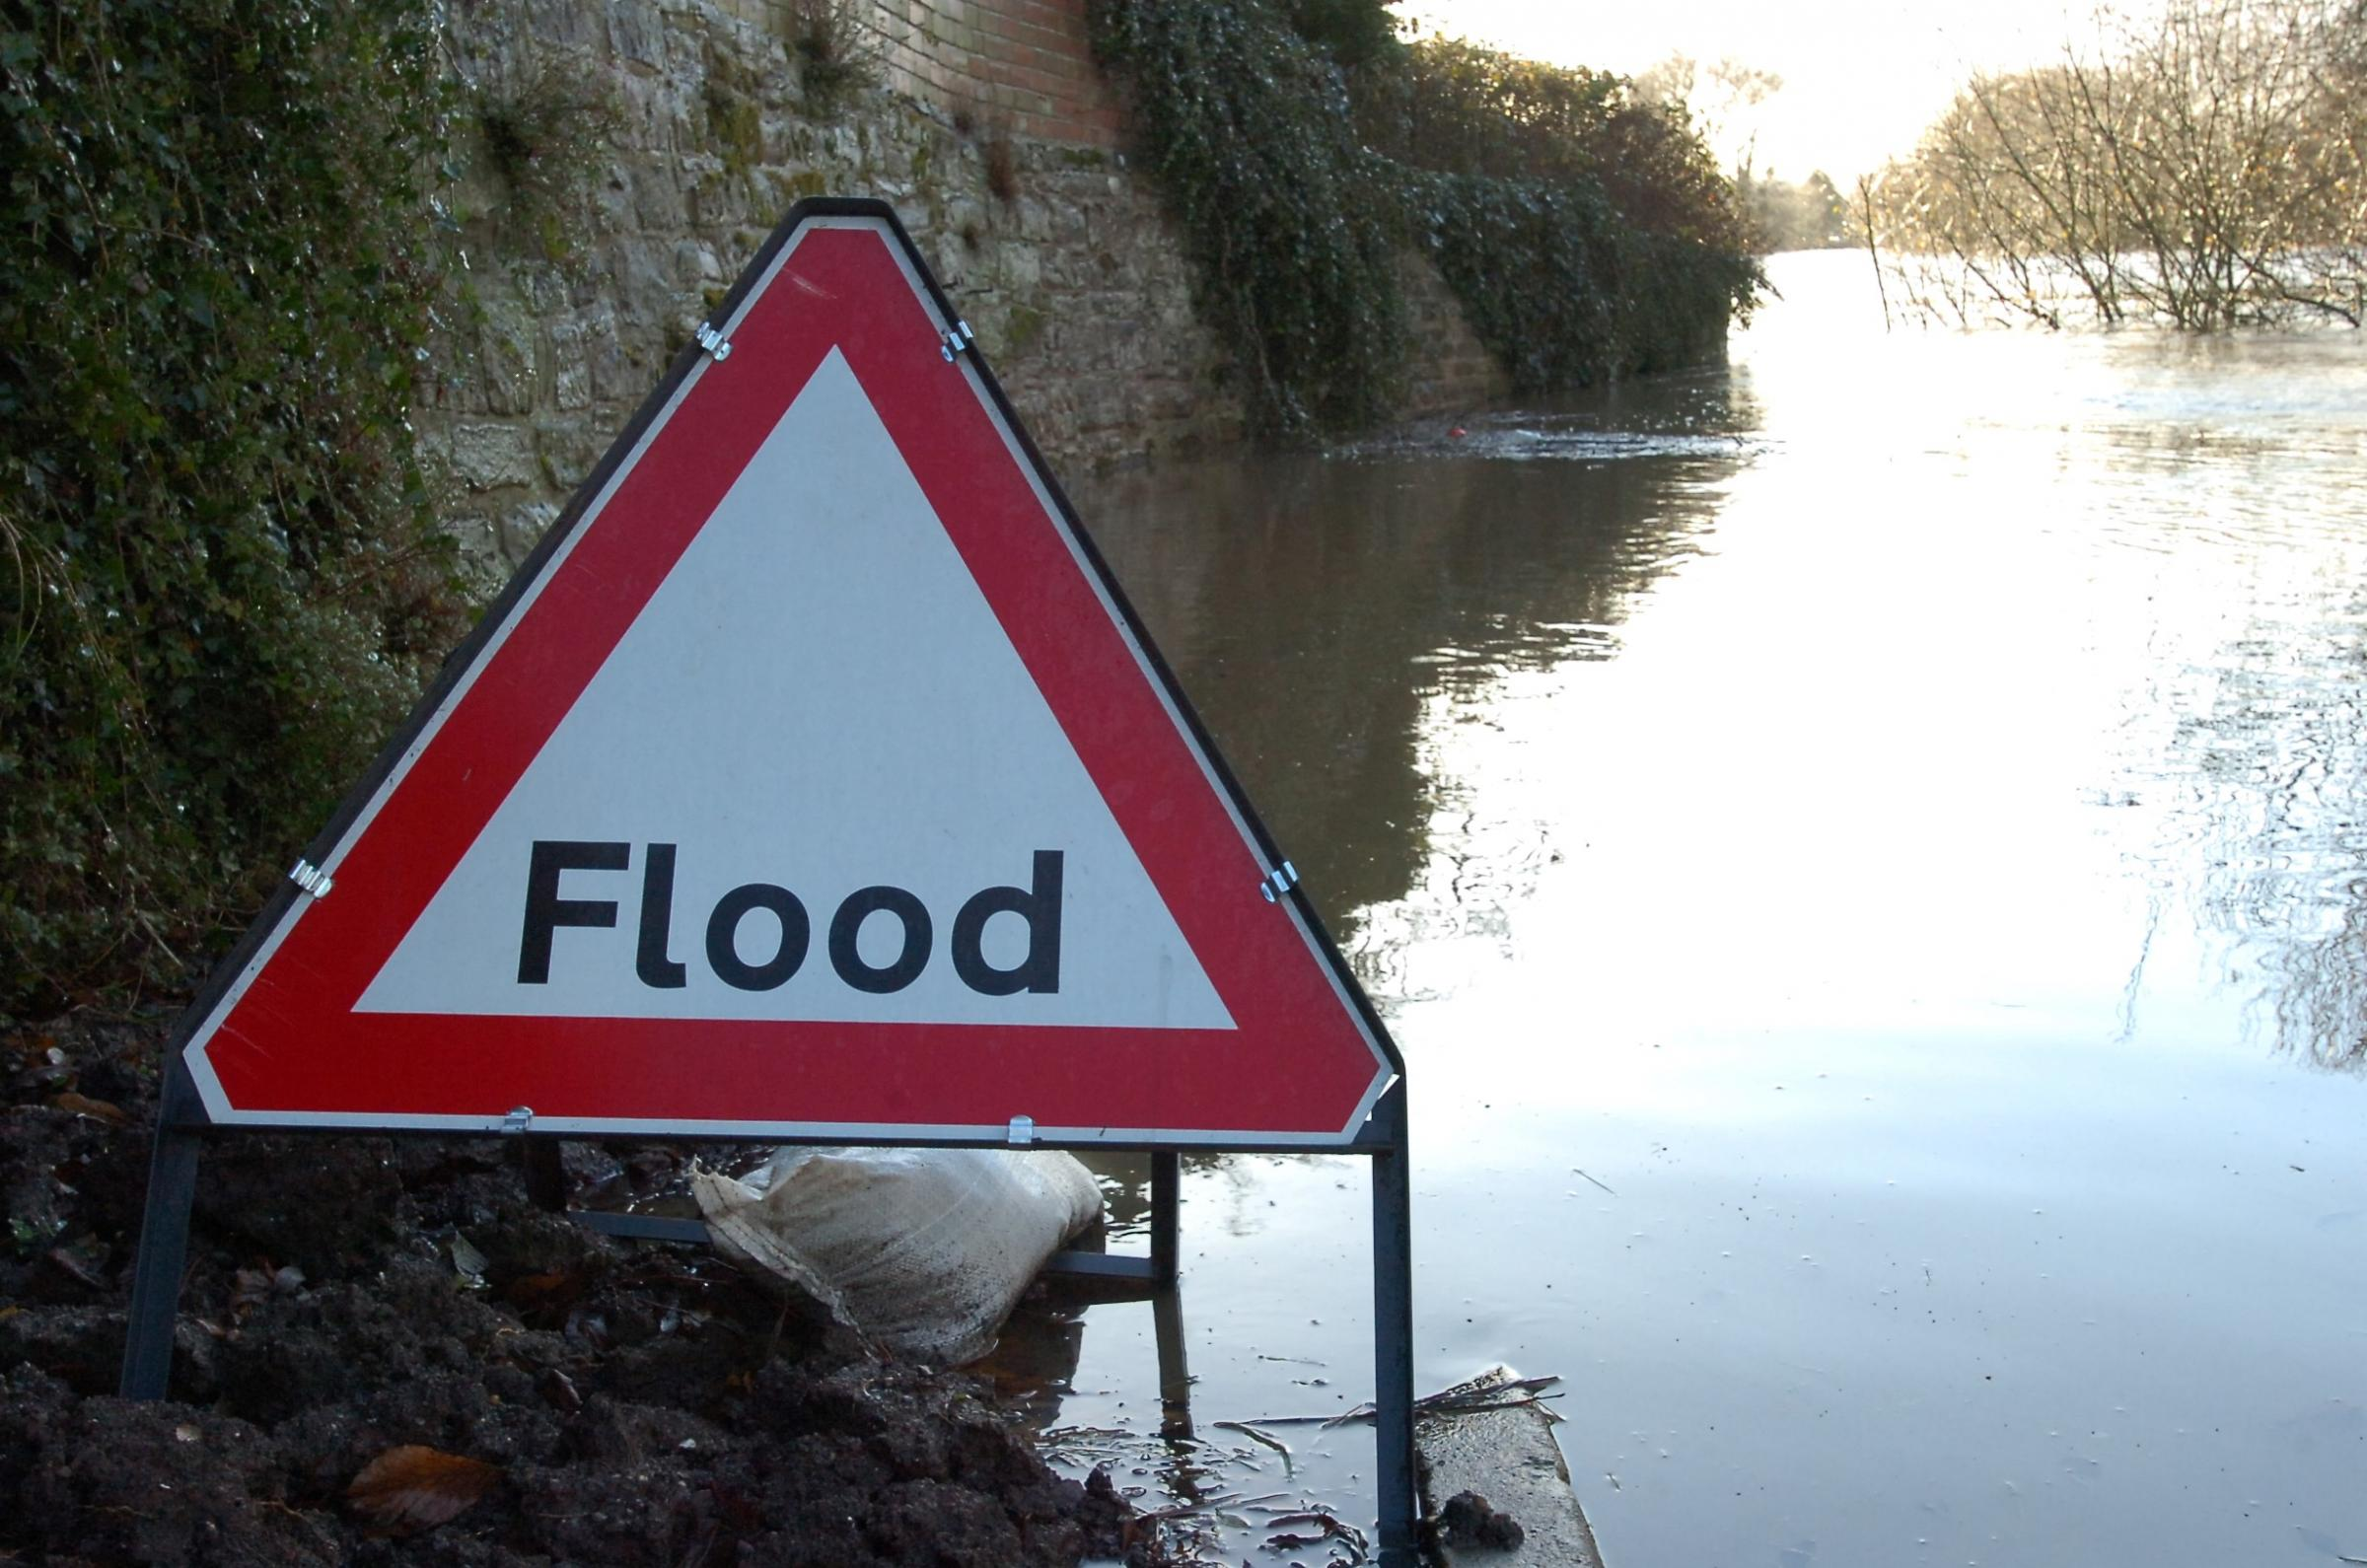 Several roads in the county have been affected by flooding today.